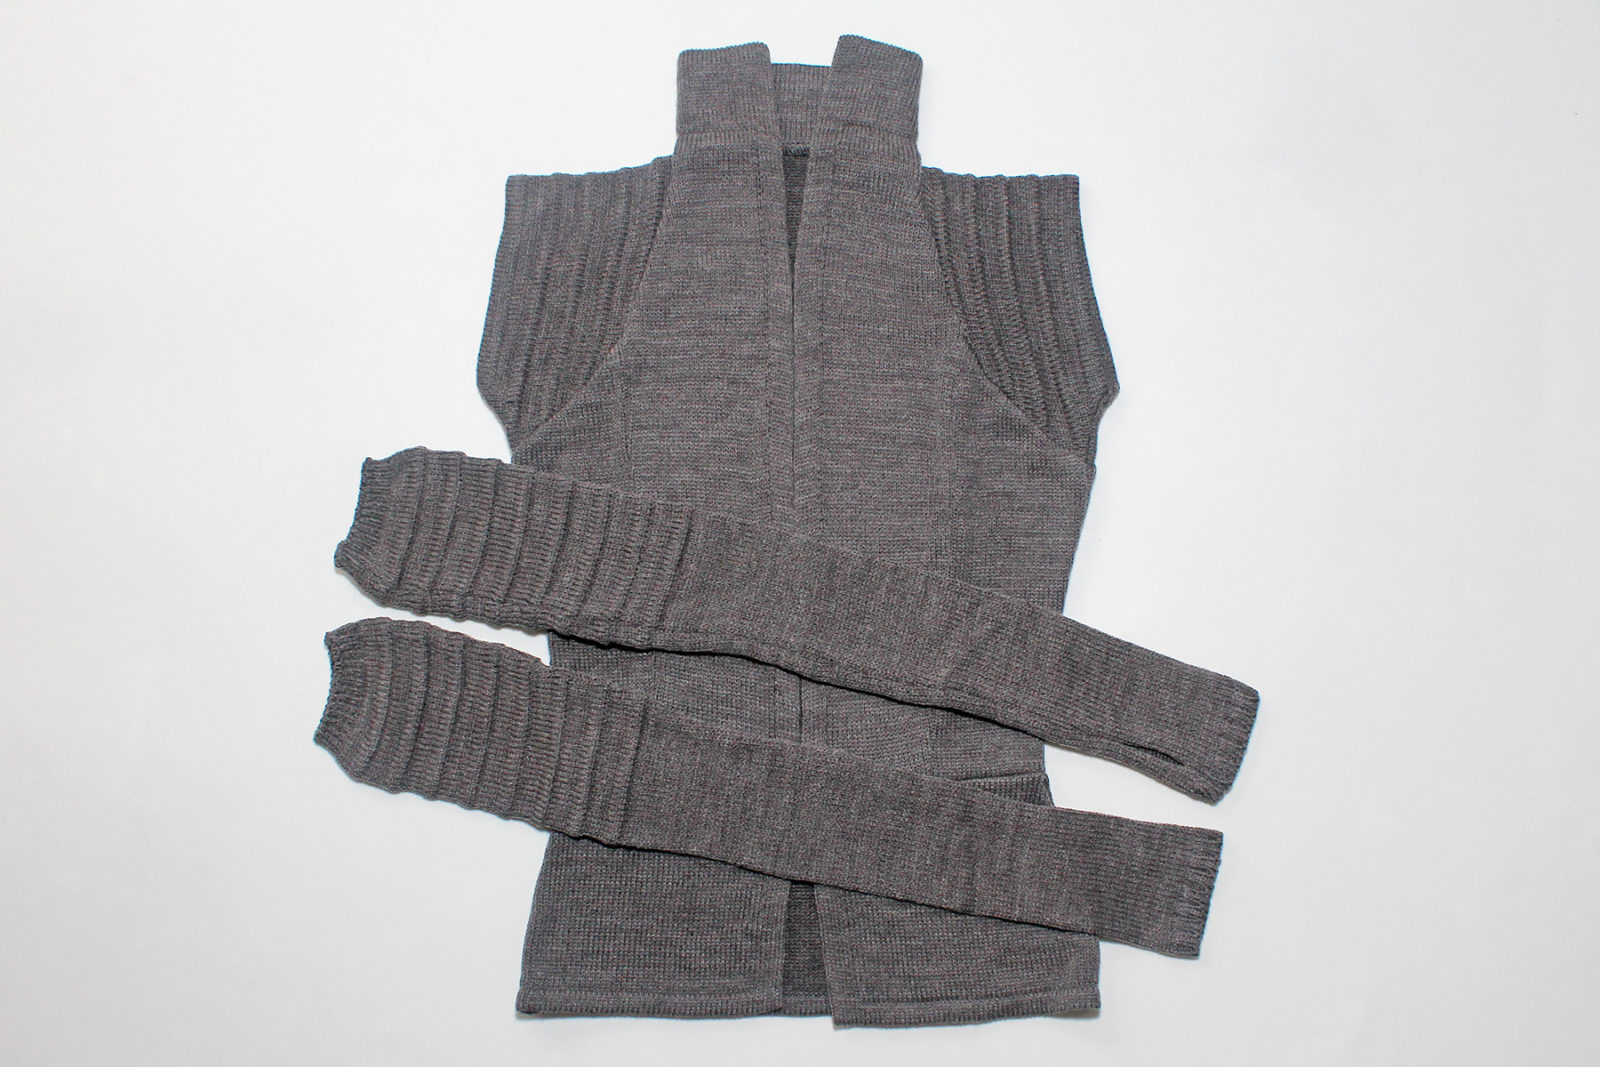 Review – Elhoffer Design knitted Rey vest